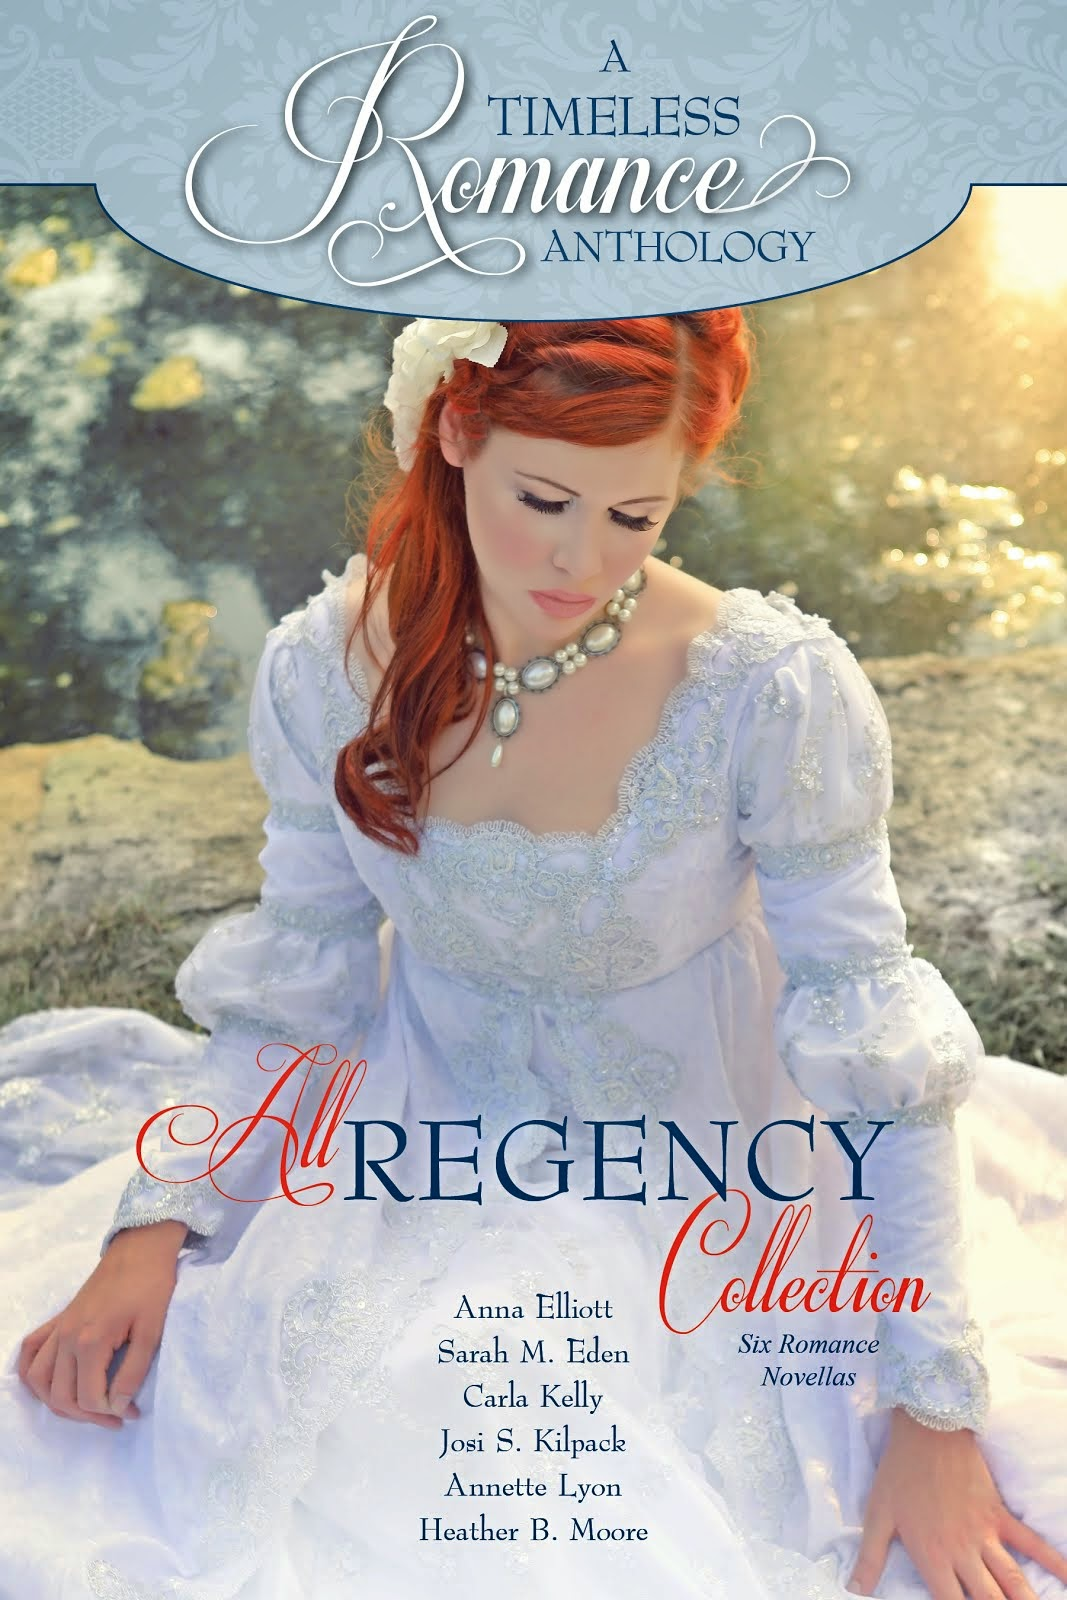 Coming January 2015! All Regency Collection